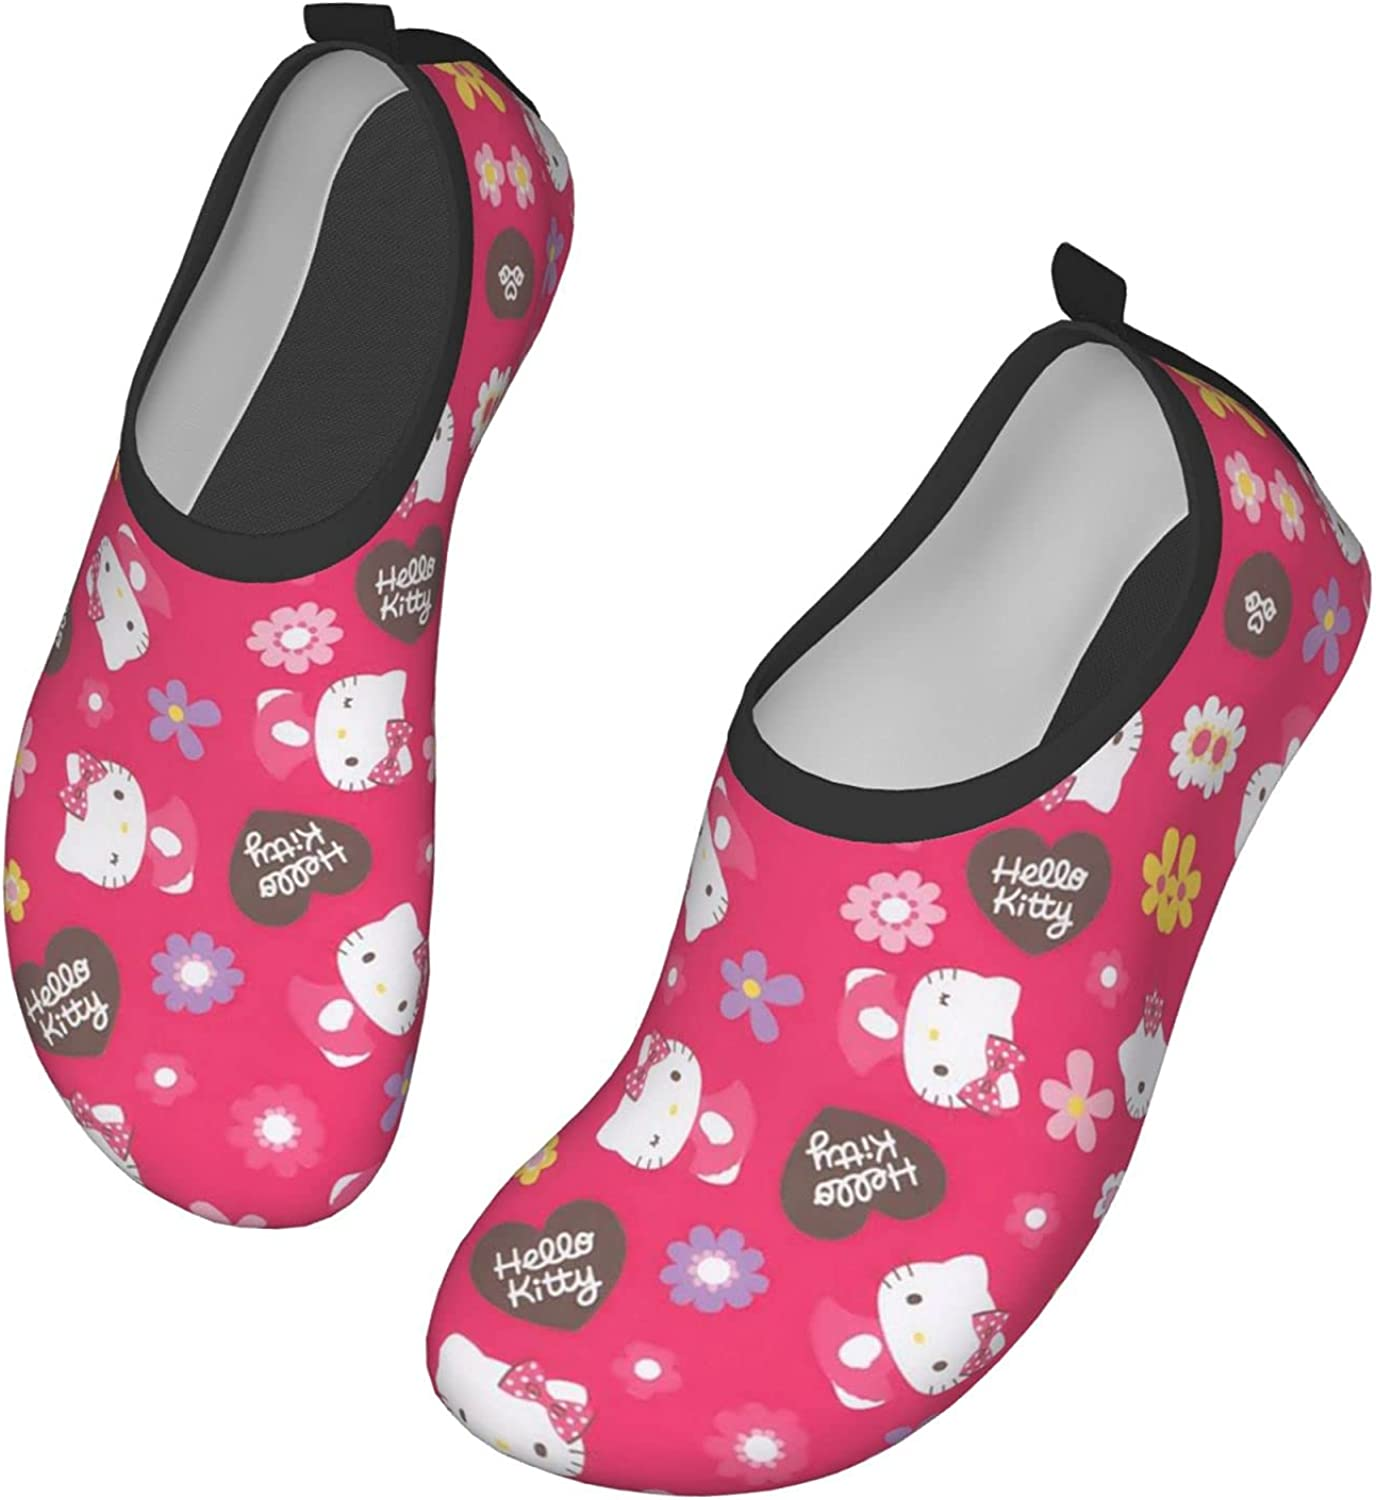 Hello Kitty Water Shoes Men's Women's Swim Shoes Barefoot Beach Pool Shoes Quick-Dry Yoga for Surf Swim Water Sport